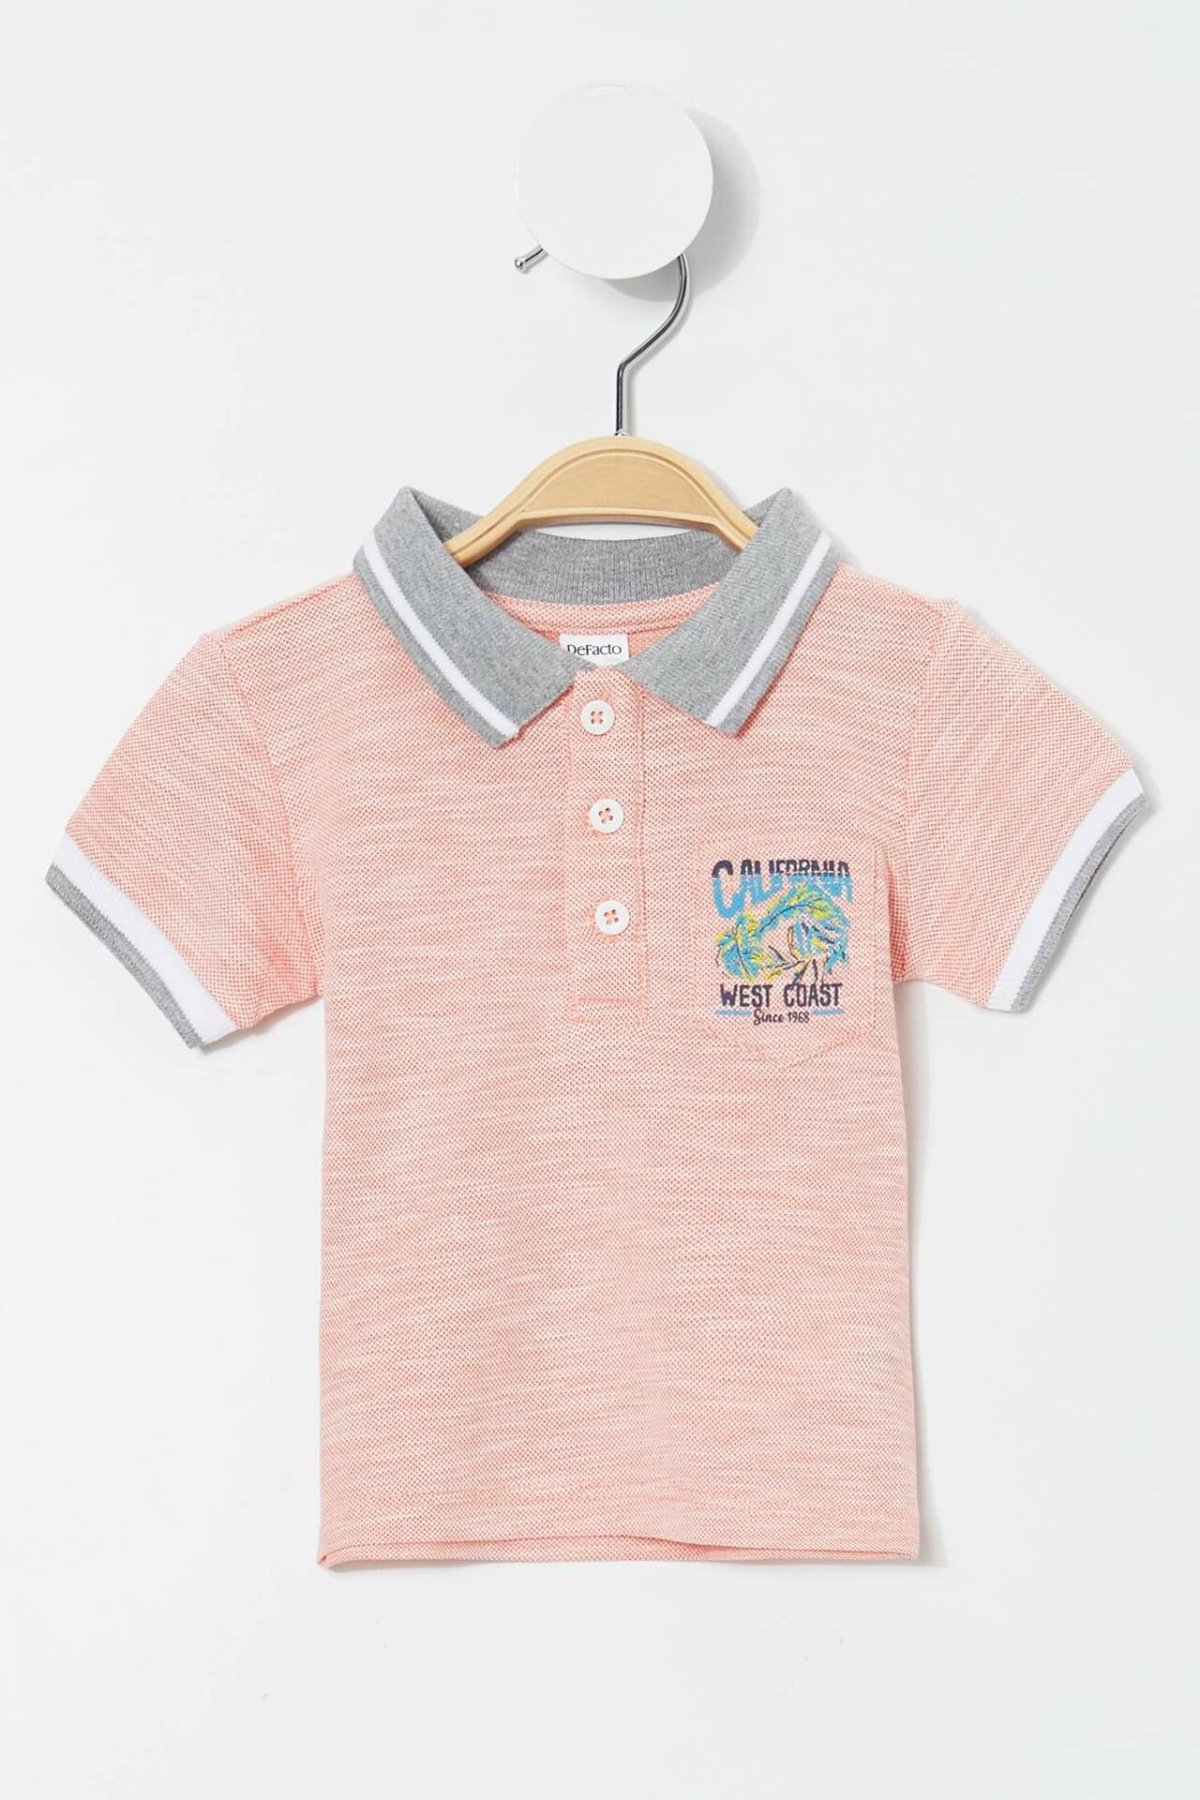 DeFacto Summer Baby Fashion Lapel T-shirt High Quality Kids Casual Short Sleeves Comfort Tops New - K8258A219SM